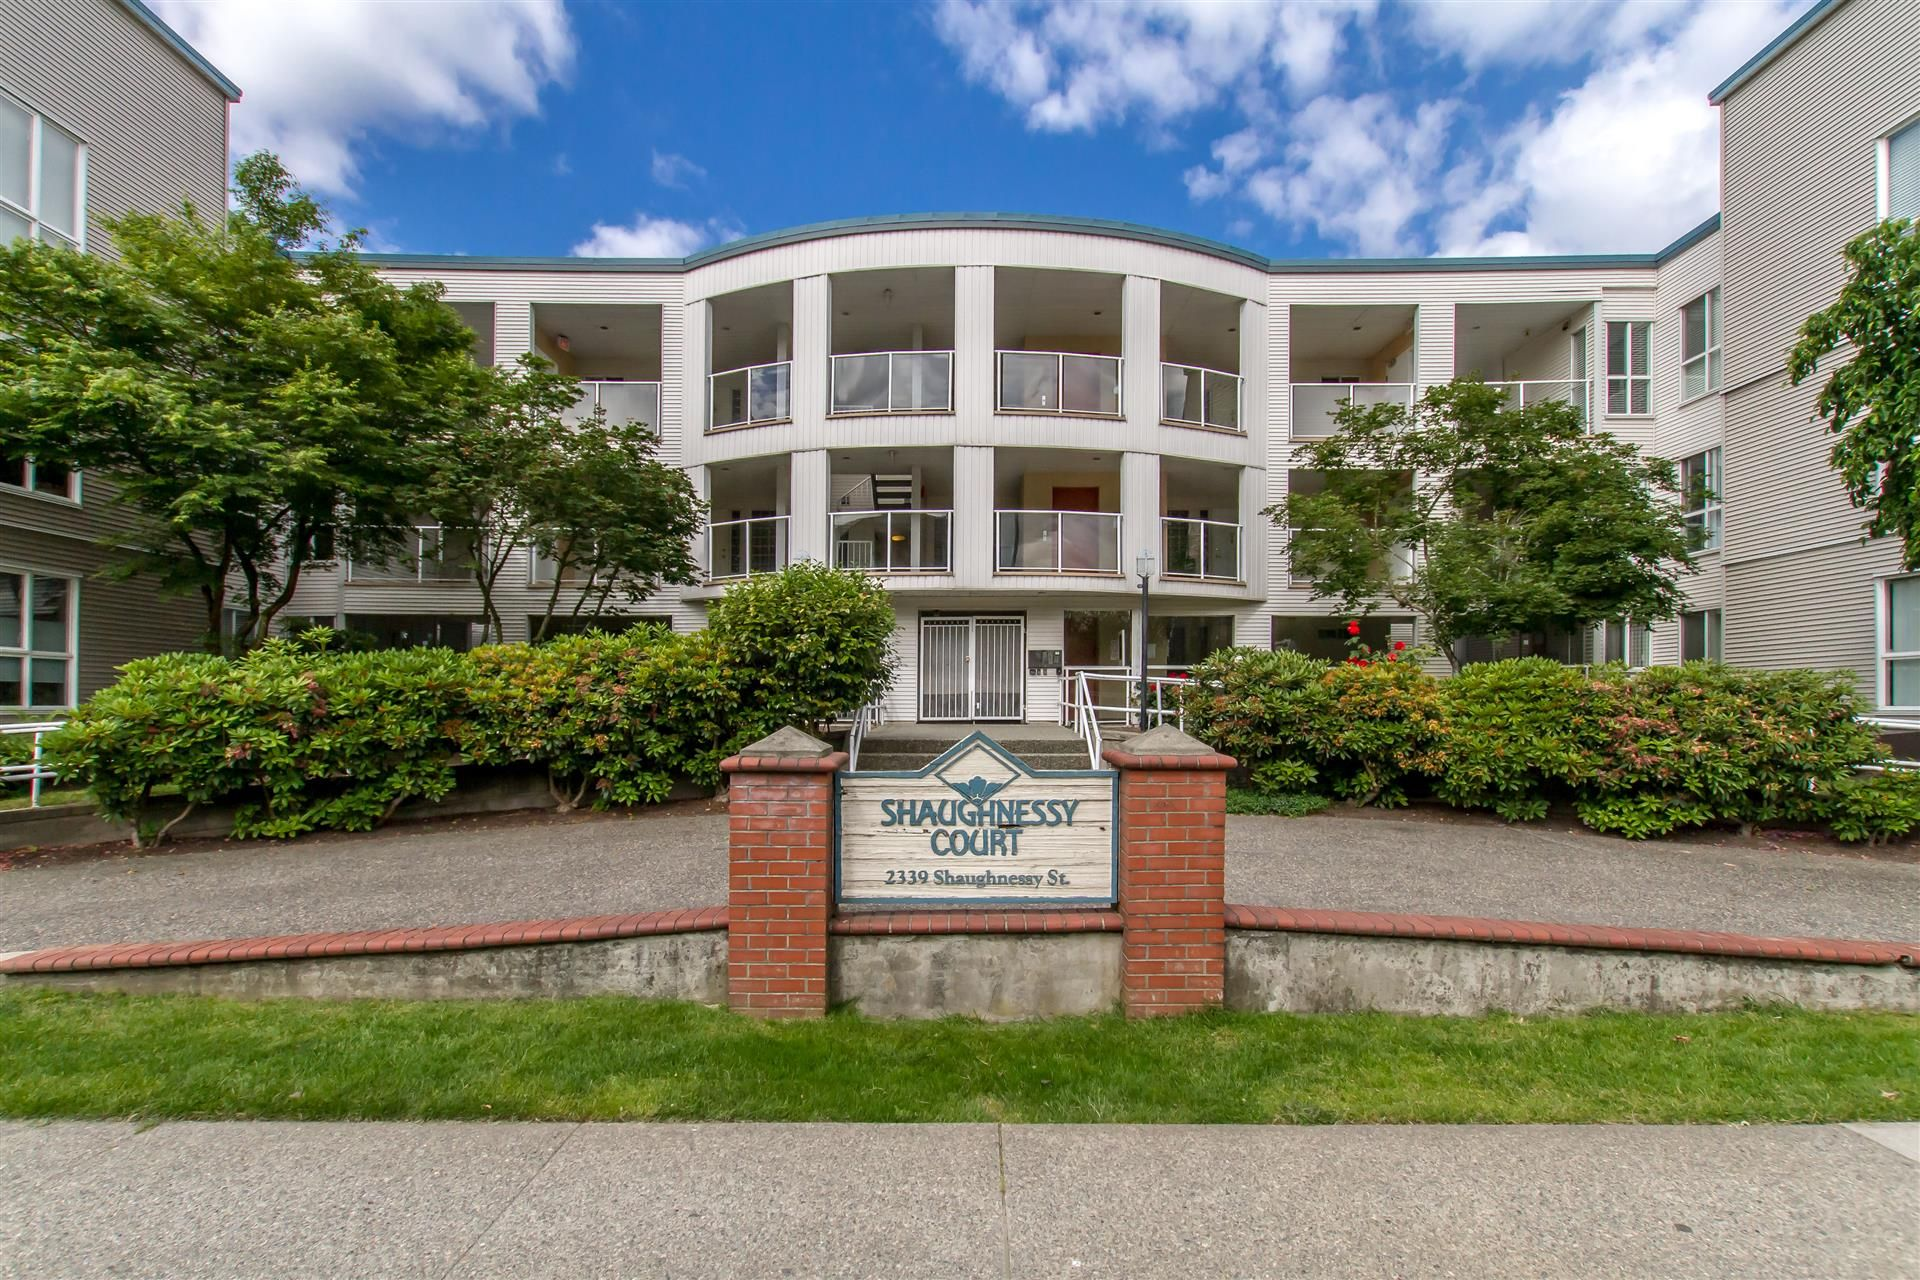 """Main Photo: 204 2339 SHAUGHNESSY Street in Port Coquitlam: Central Pt Coquitlam Condo for sale in """"SHAUGHNESSY COURT"""" : MLS®# R2371838"""